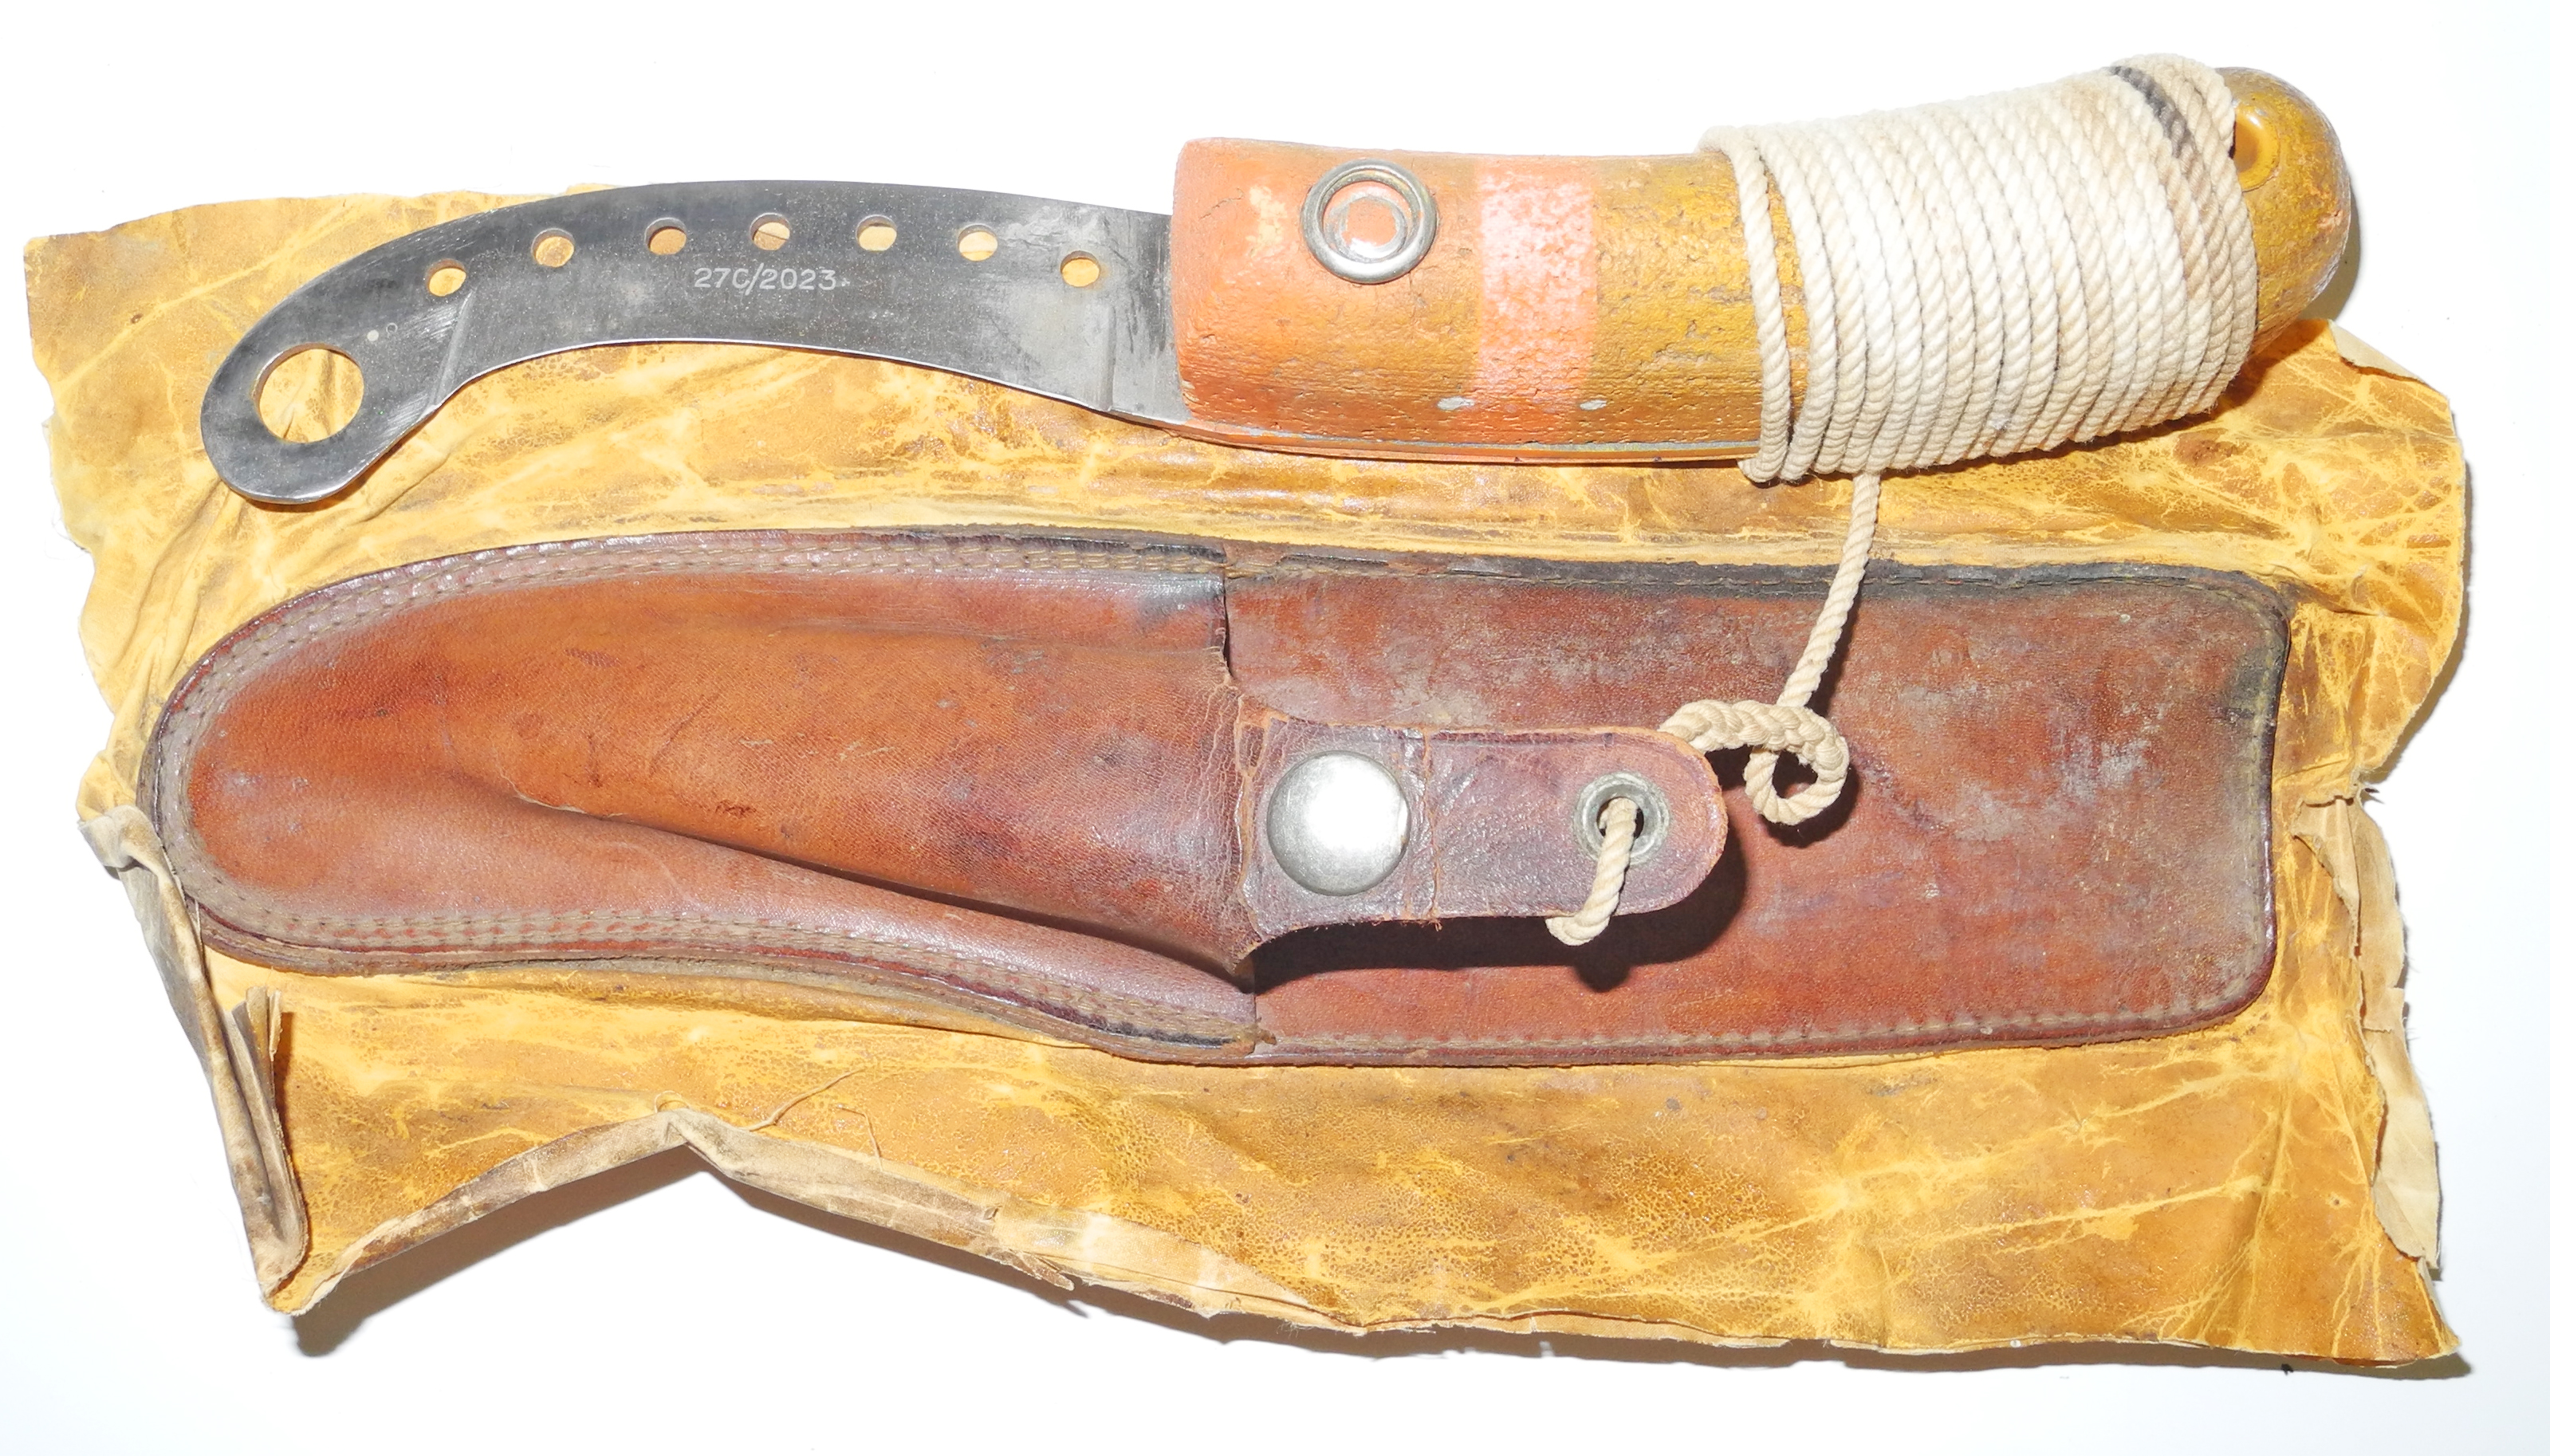 WII RAF large size dinghy knife and scabbard